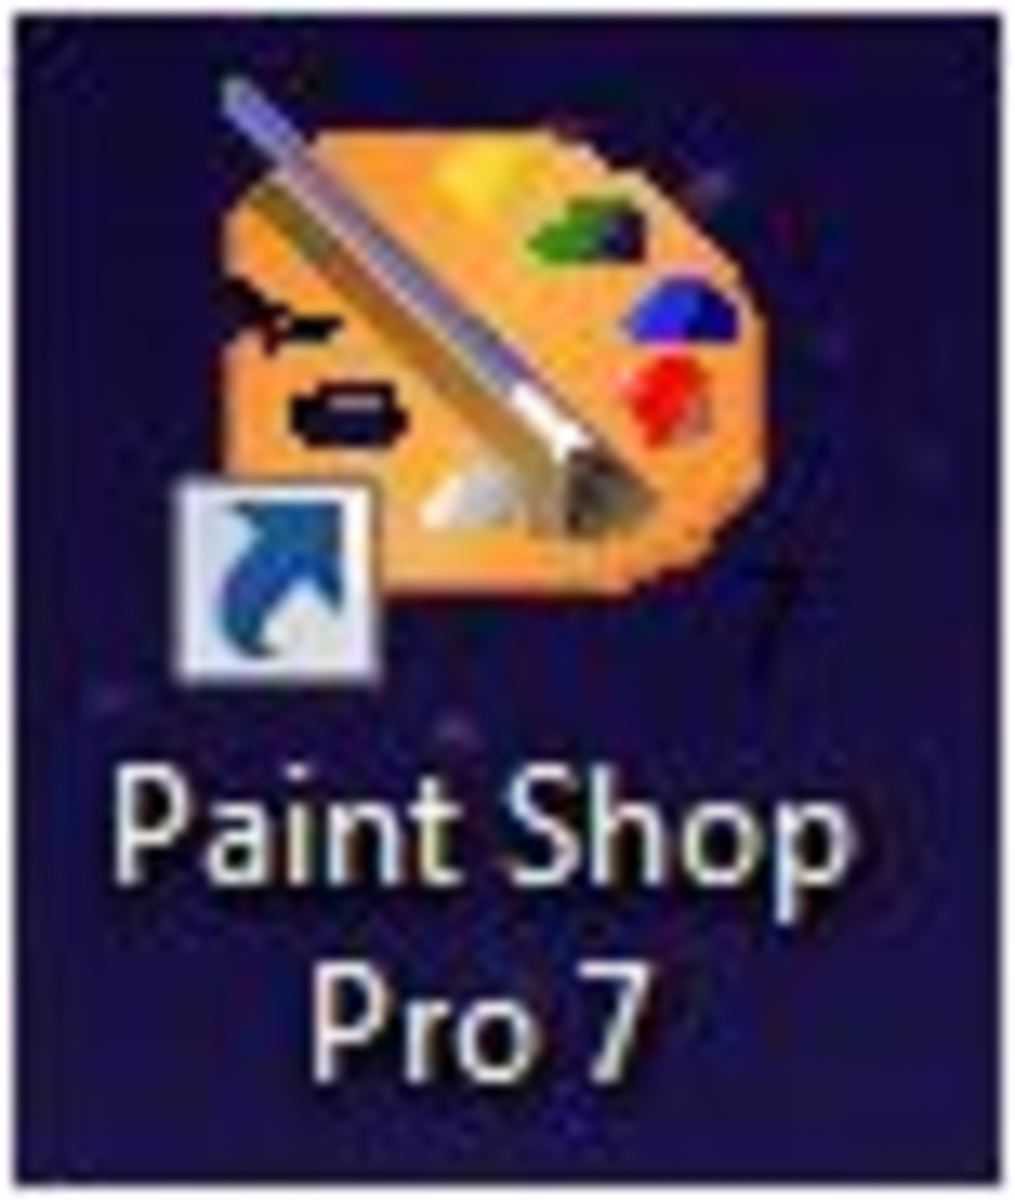 How to make Tubes on Paint Shop Pro